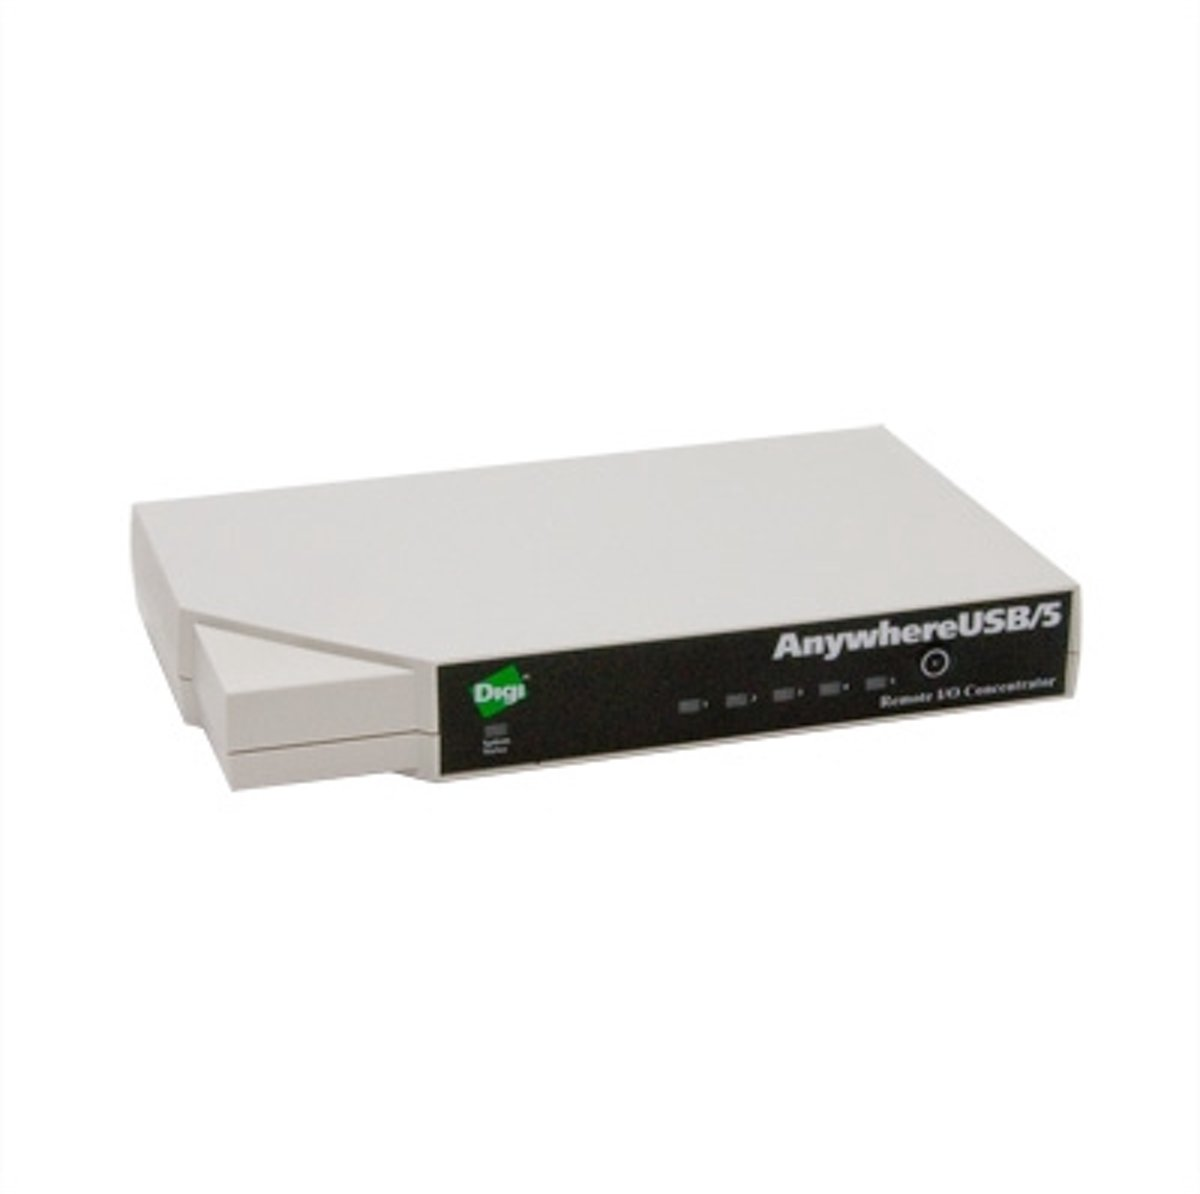 AnywhereUSB 5 port USB over IP   Gen2